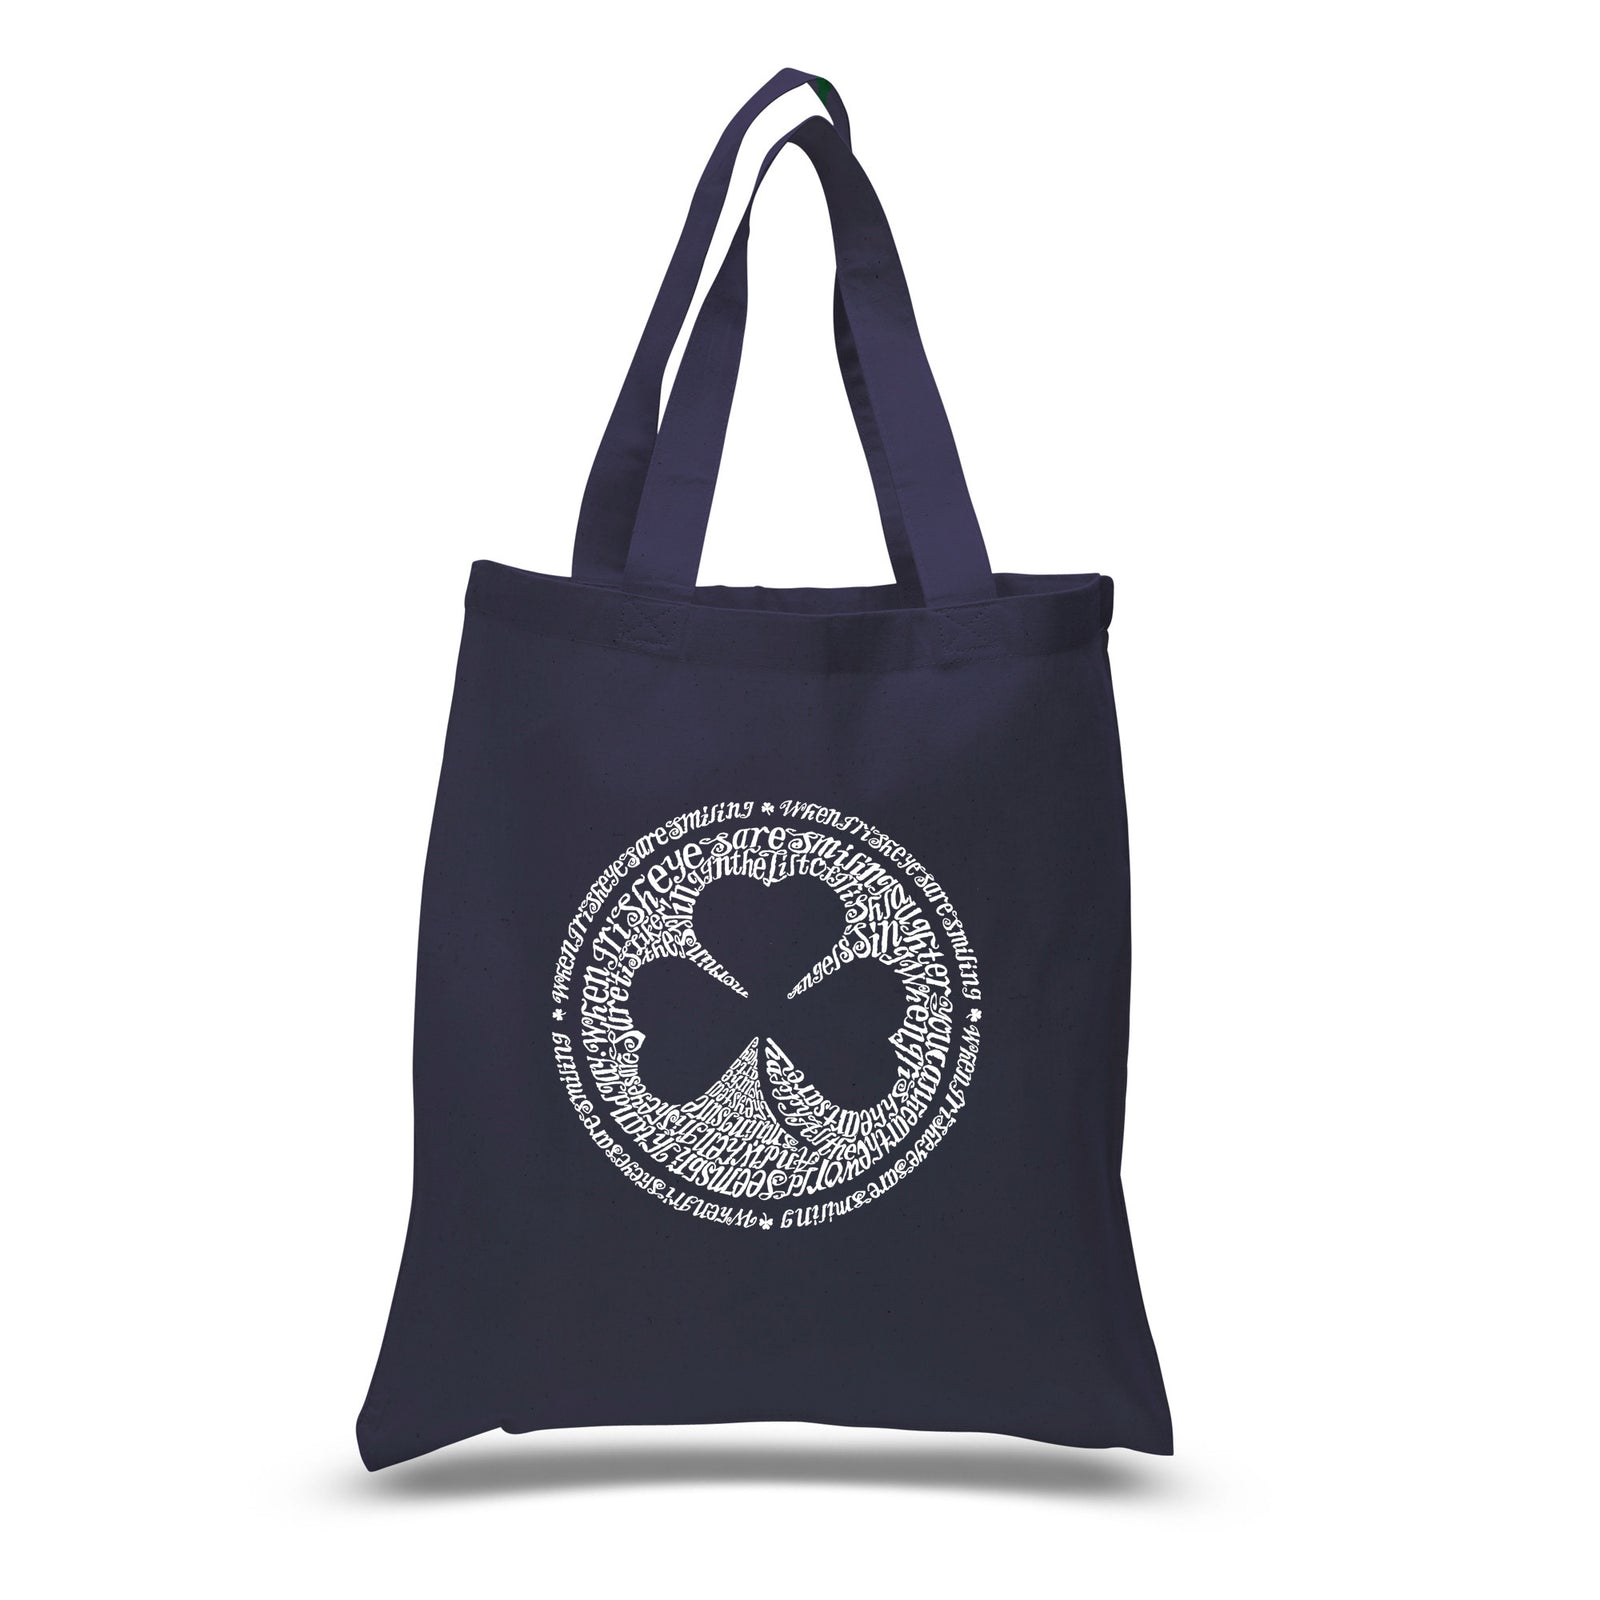 Small Tote Bag - LYRICS TO WHEN IRISH EYES ARE SMILING